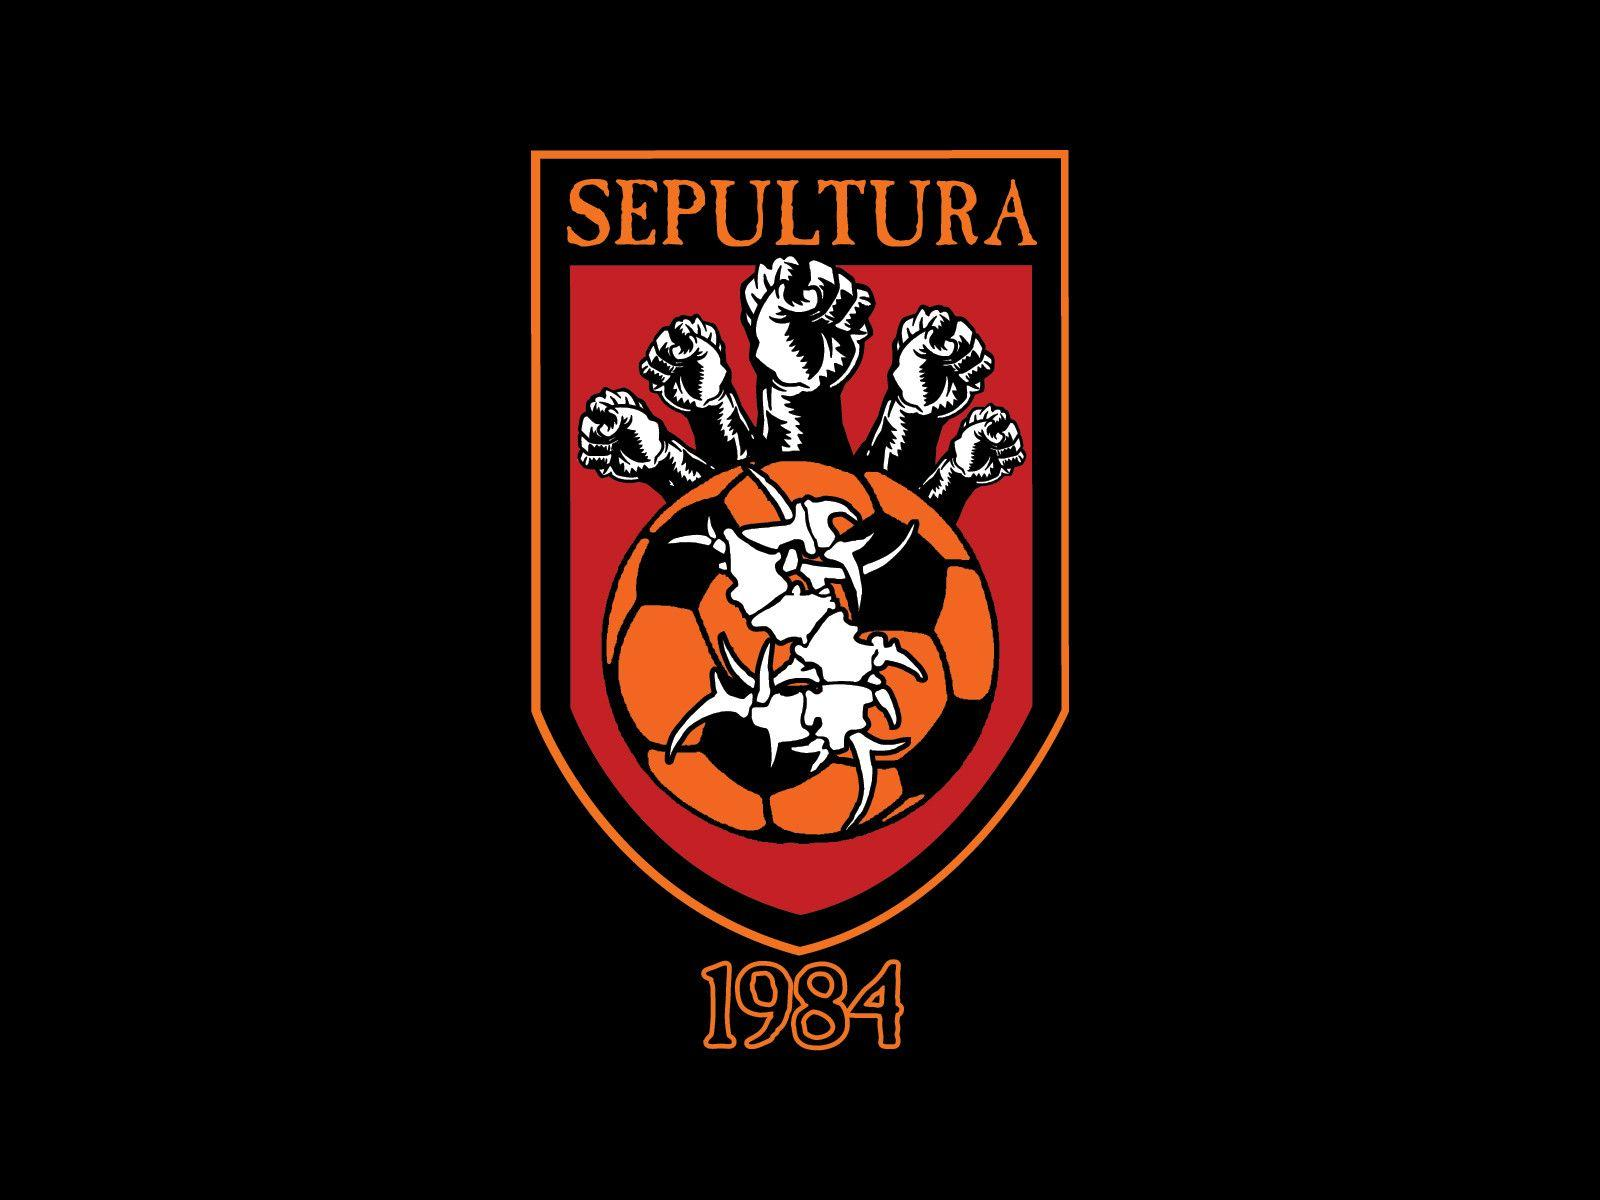 Sepultura logo and wallpapers